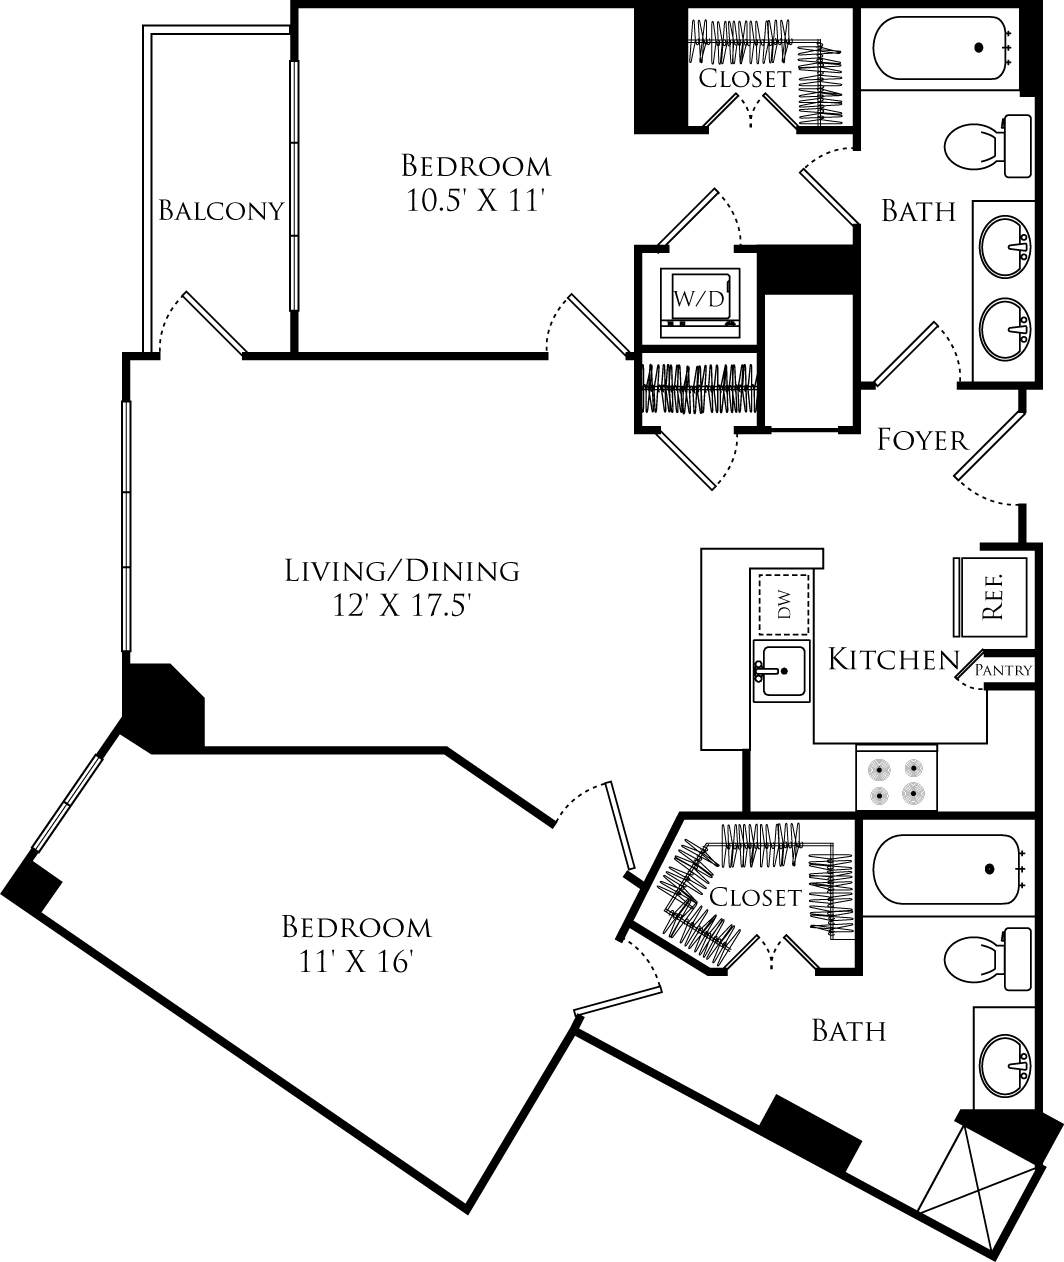 B2A floor plan with 2 beds, 2 baths and is 1016 square feet